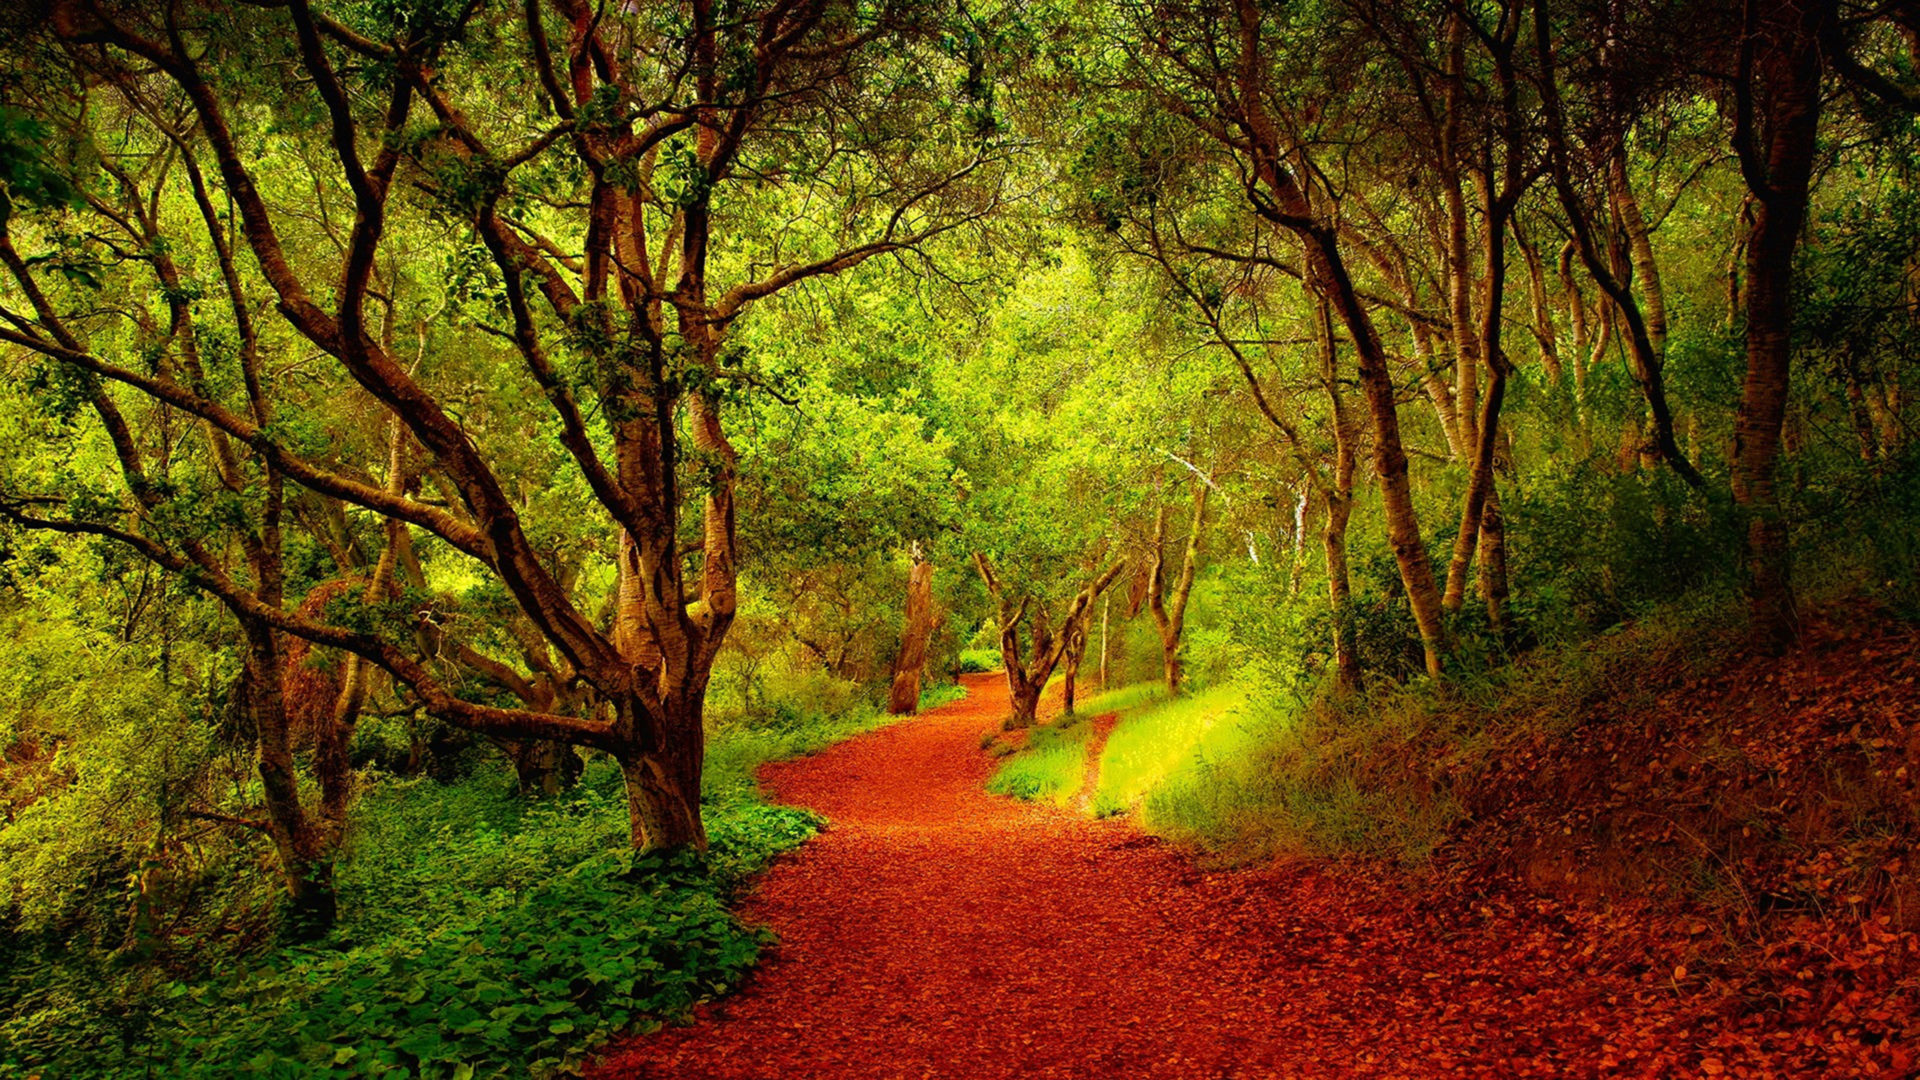 Fall Leaves Wallpaper Free Beautiful Forest Pathway 03846 Wallpapers13 Com